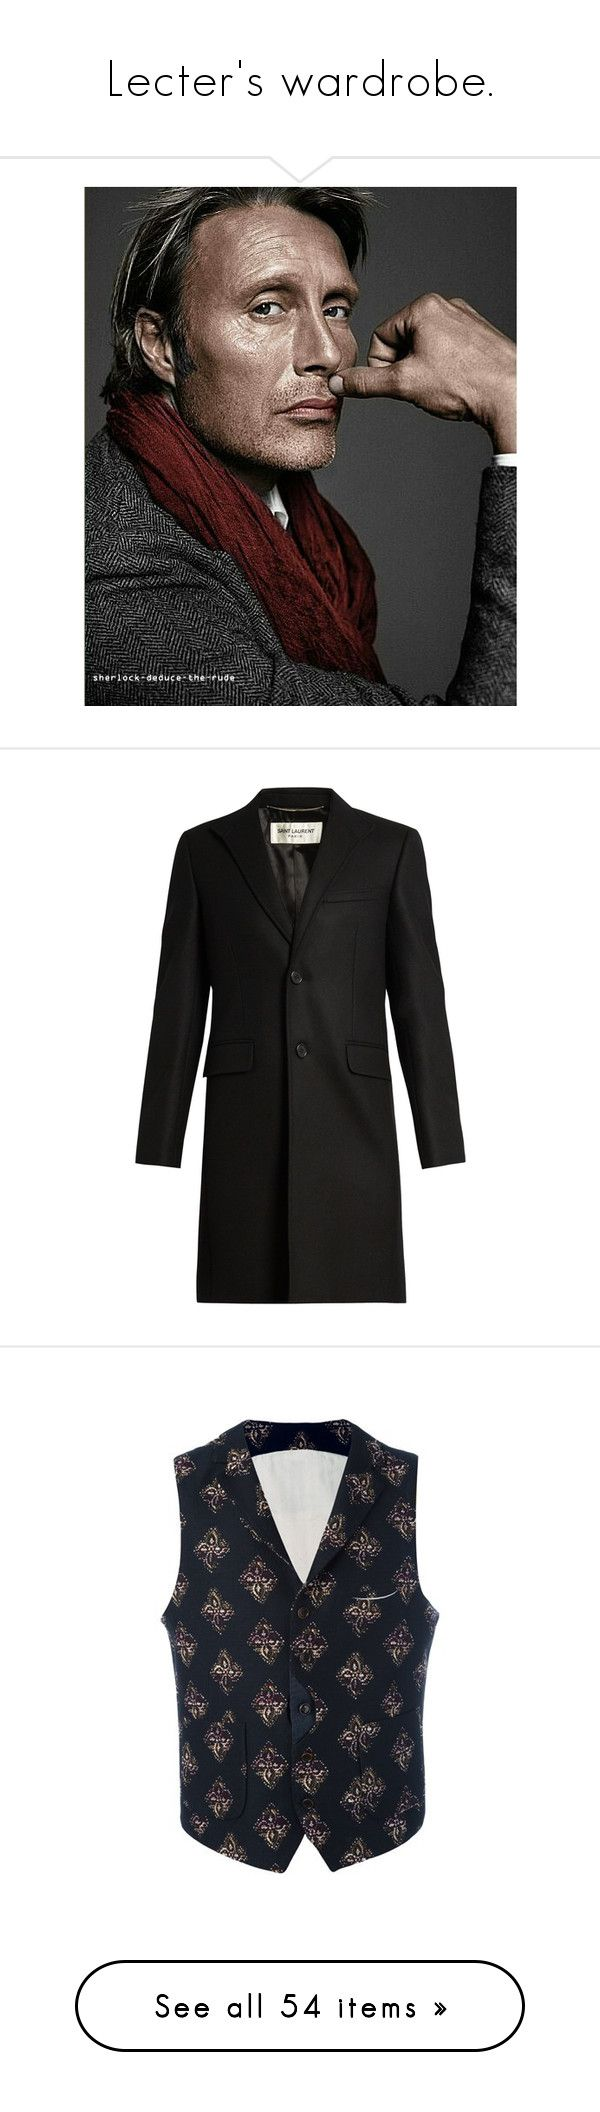 """""""Lecter's wardrobe."""" by mariettamyan ❤ liked on Polyvore featuring men's fashion, men's clothing, men's outerwear, men's coats, black, mens single breasted pea coat, mens wool outerwear, mens wool coats, mens single breasted wool coat and men's vests"""